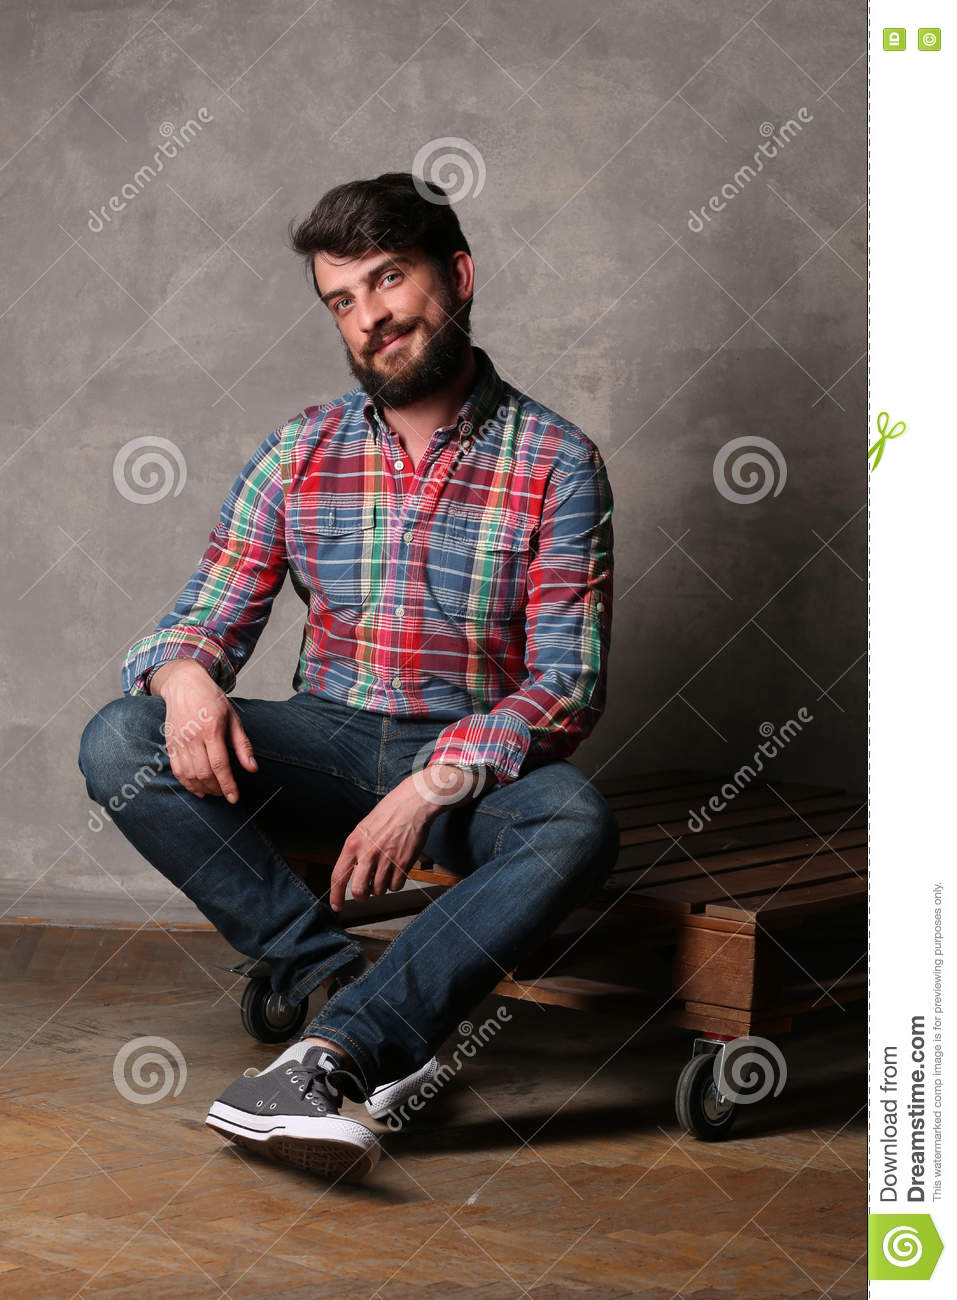 f2c7ce0198 Bearded Man In Colorful Shirt And Jeans Sitting On A Deck Stock ...